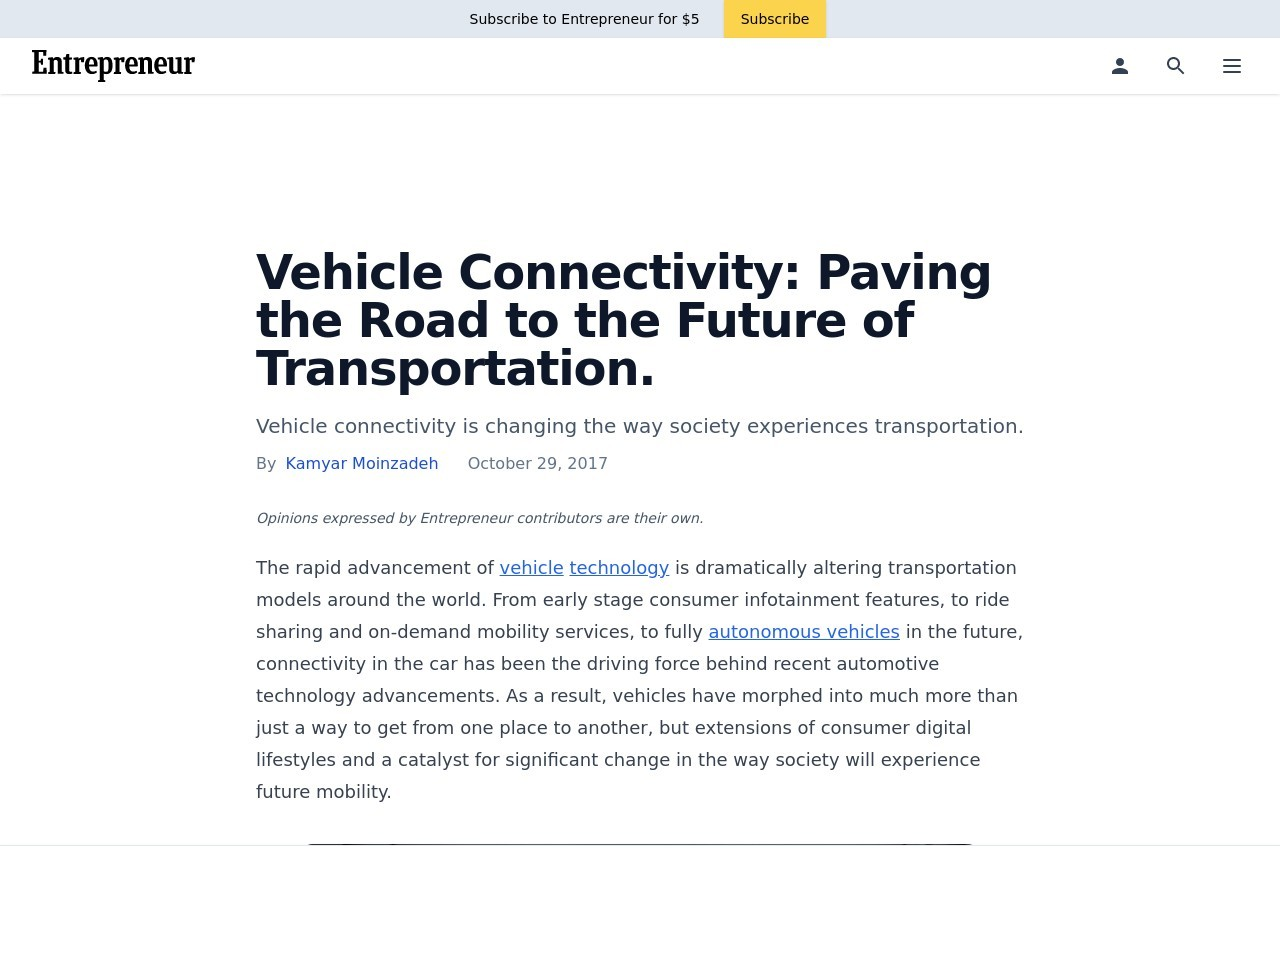 Vehicle Connectivity: Paving the Road to the Future of Transportation.